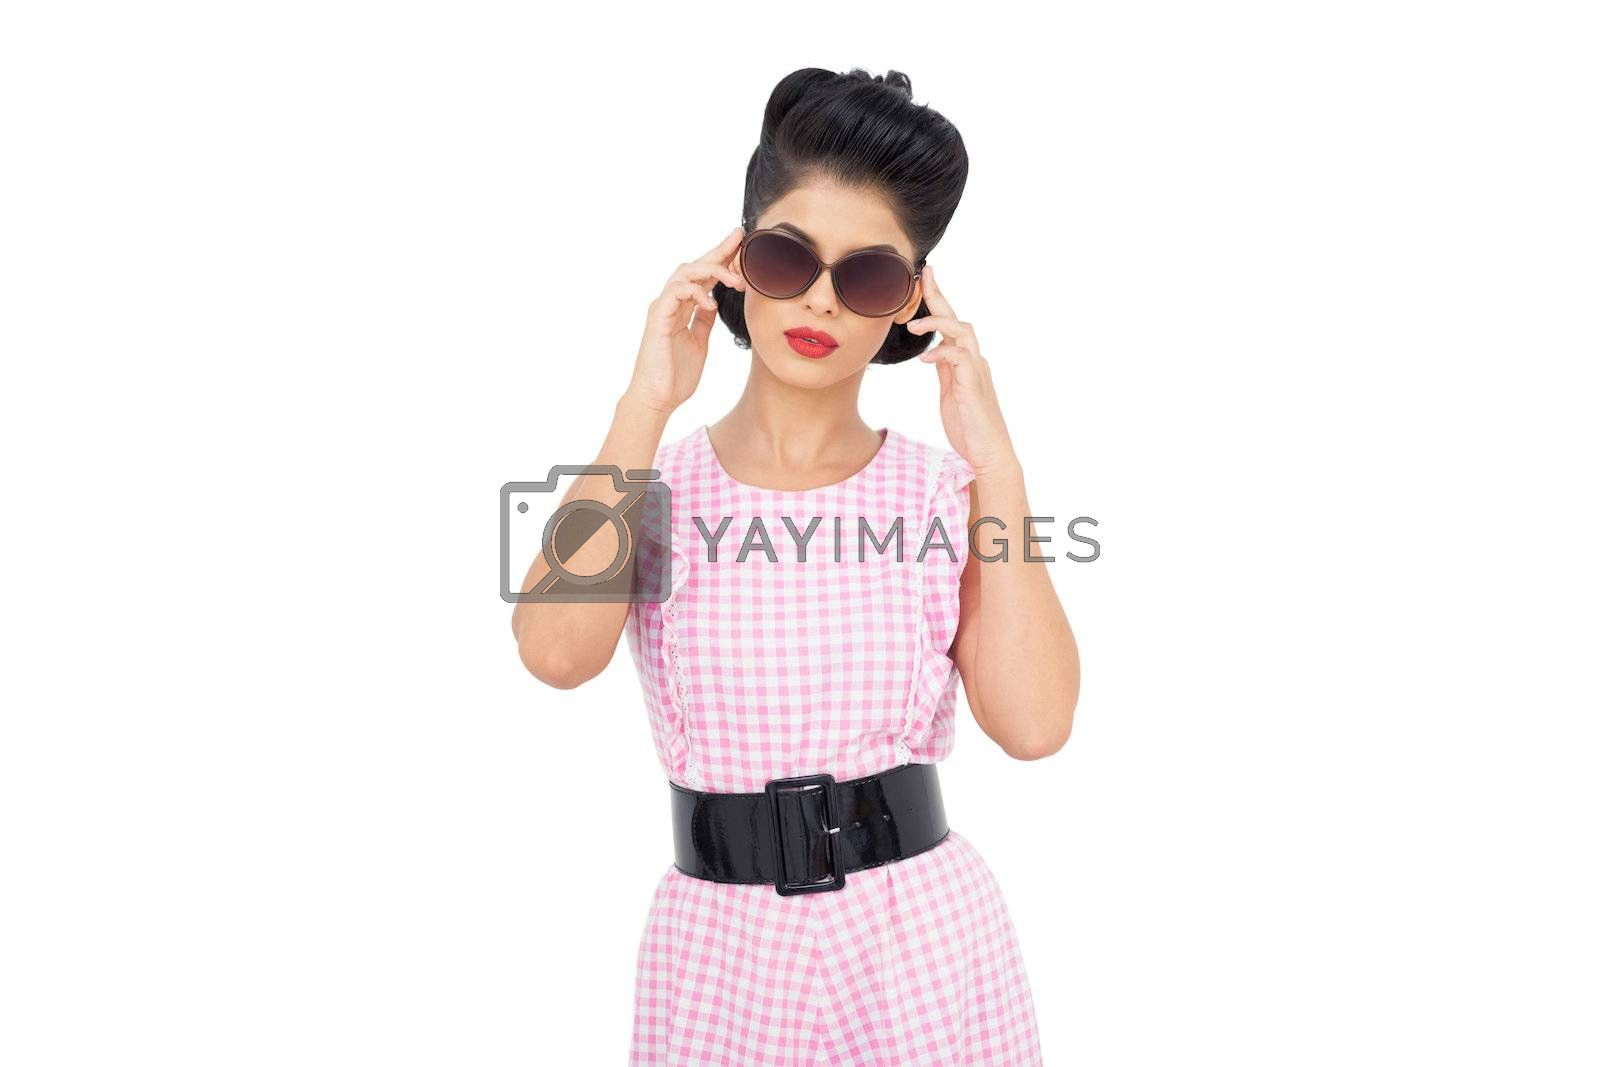 Concentrated black hair model wearing sunglasses by Wavebreakmedia